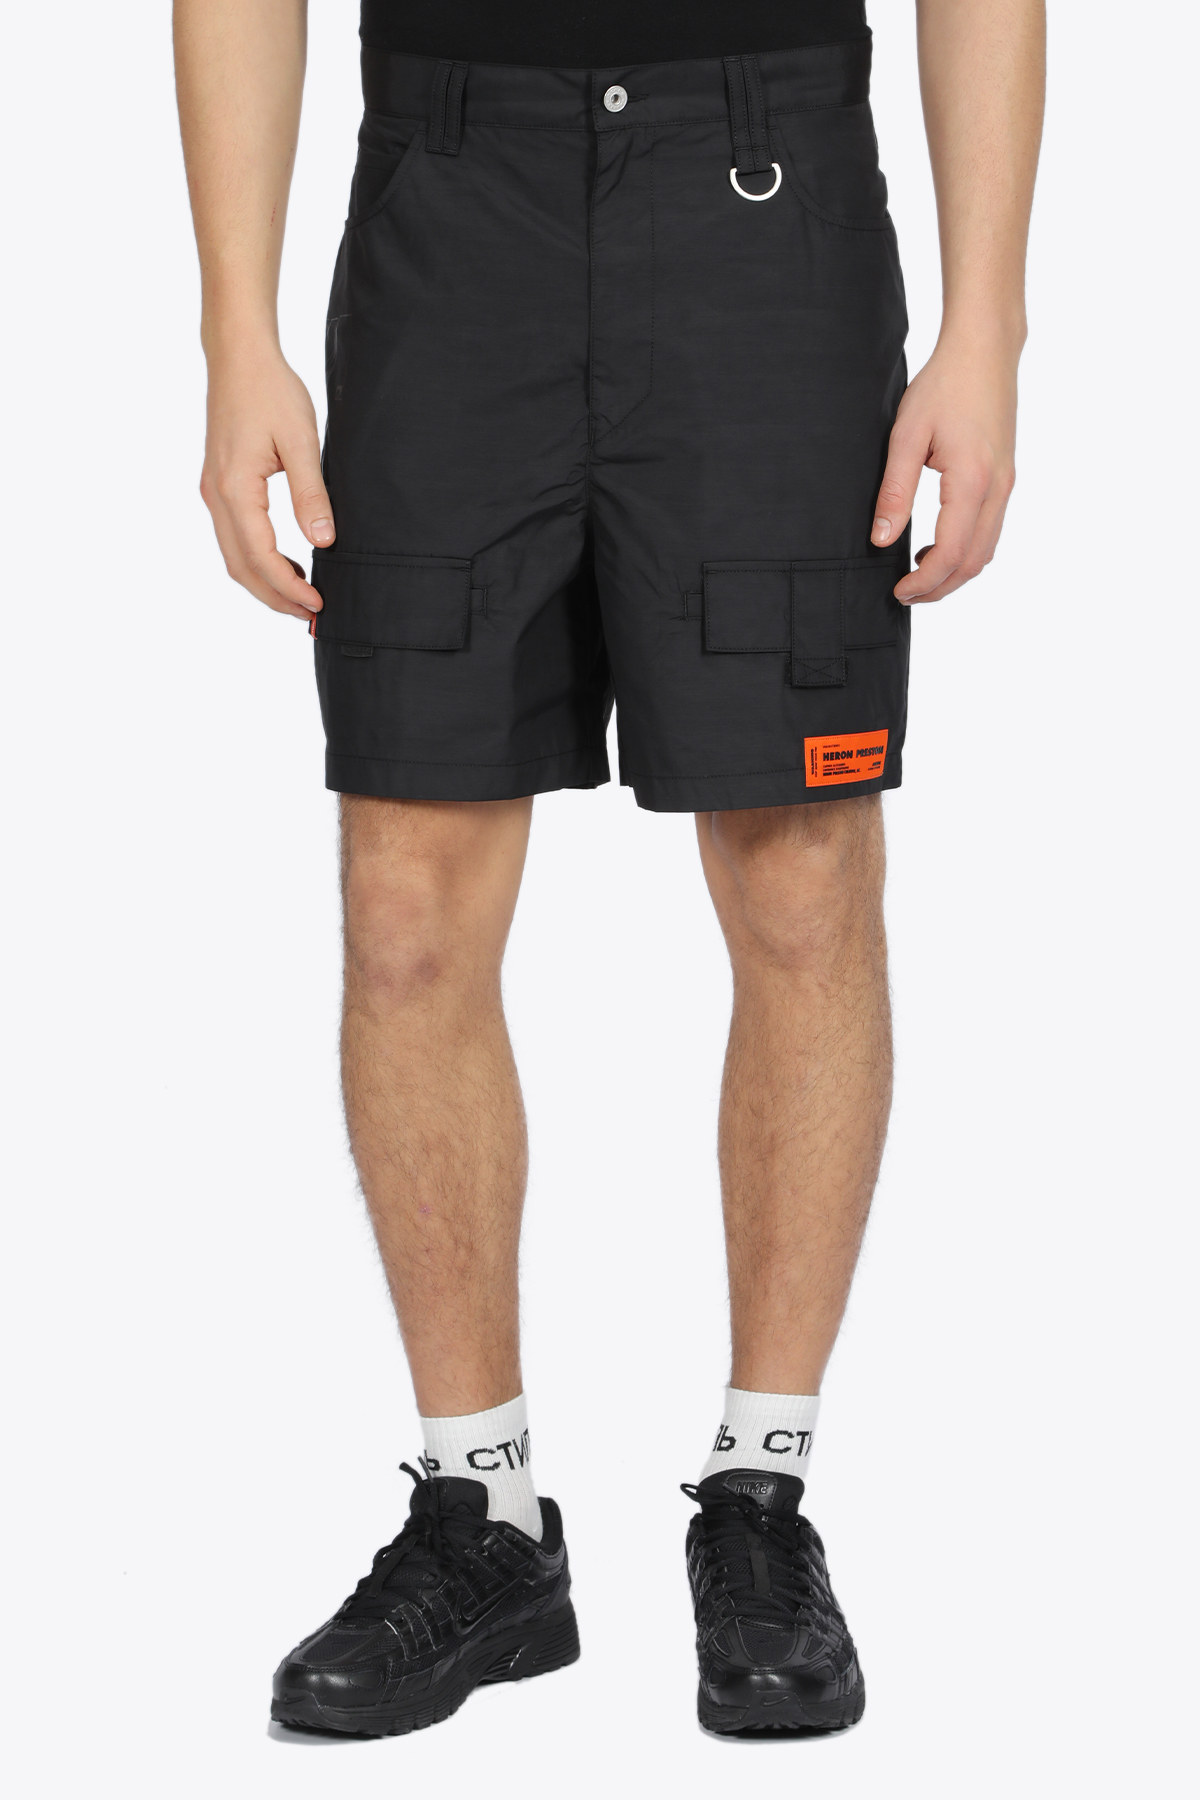 NYLON CARGO SHORTS HERON PRESTON | 30 | HMCB005S20892016 CARGO SHORTS1010